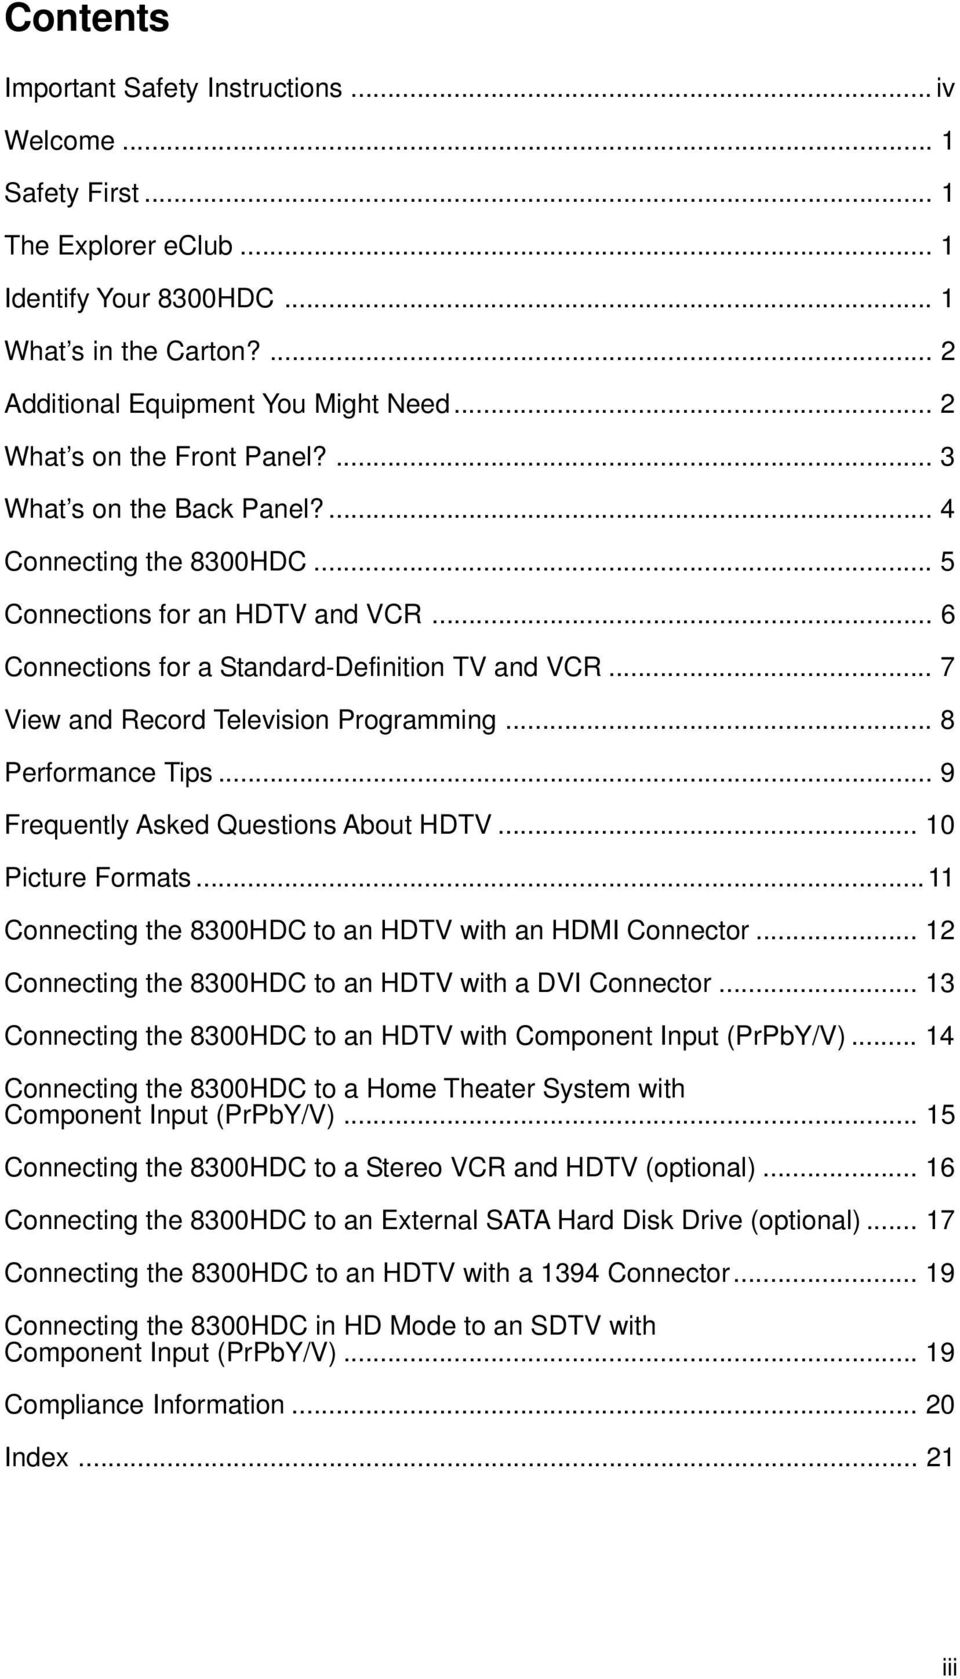 .. 7 View and ecord Television Programming... 8 Performance Tips... 9 Frequently Asked Questions About HDTV... 10 Picture Formats...11 Connecting the 8300HDC to an HDTV with an HDMI Connector.